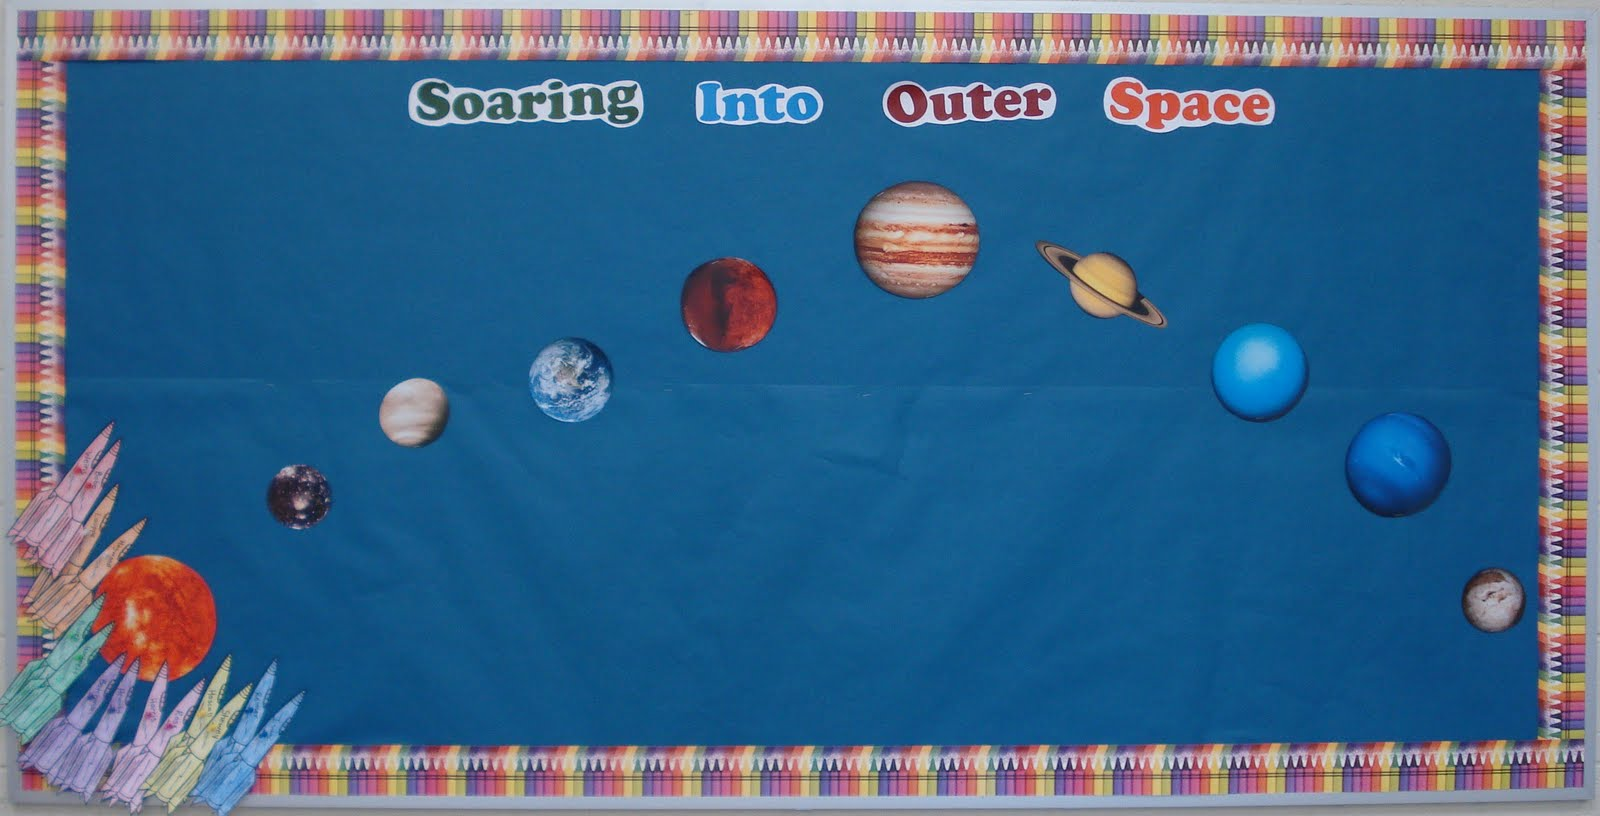 Good Behavior Bulletin Board Ideas http://amysartsyadventures.blogspot.com/2011/08/back-to-school.html